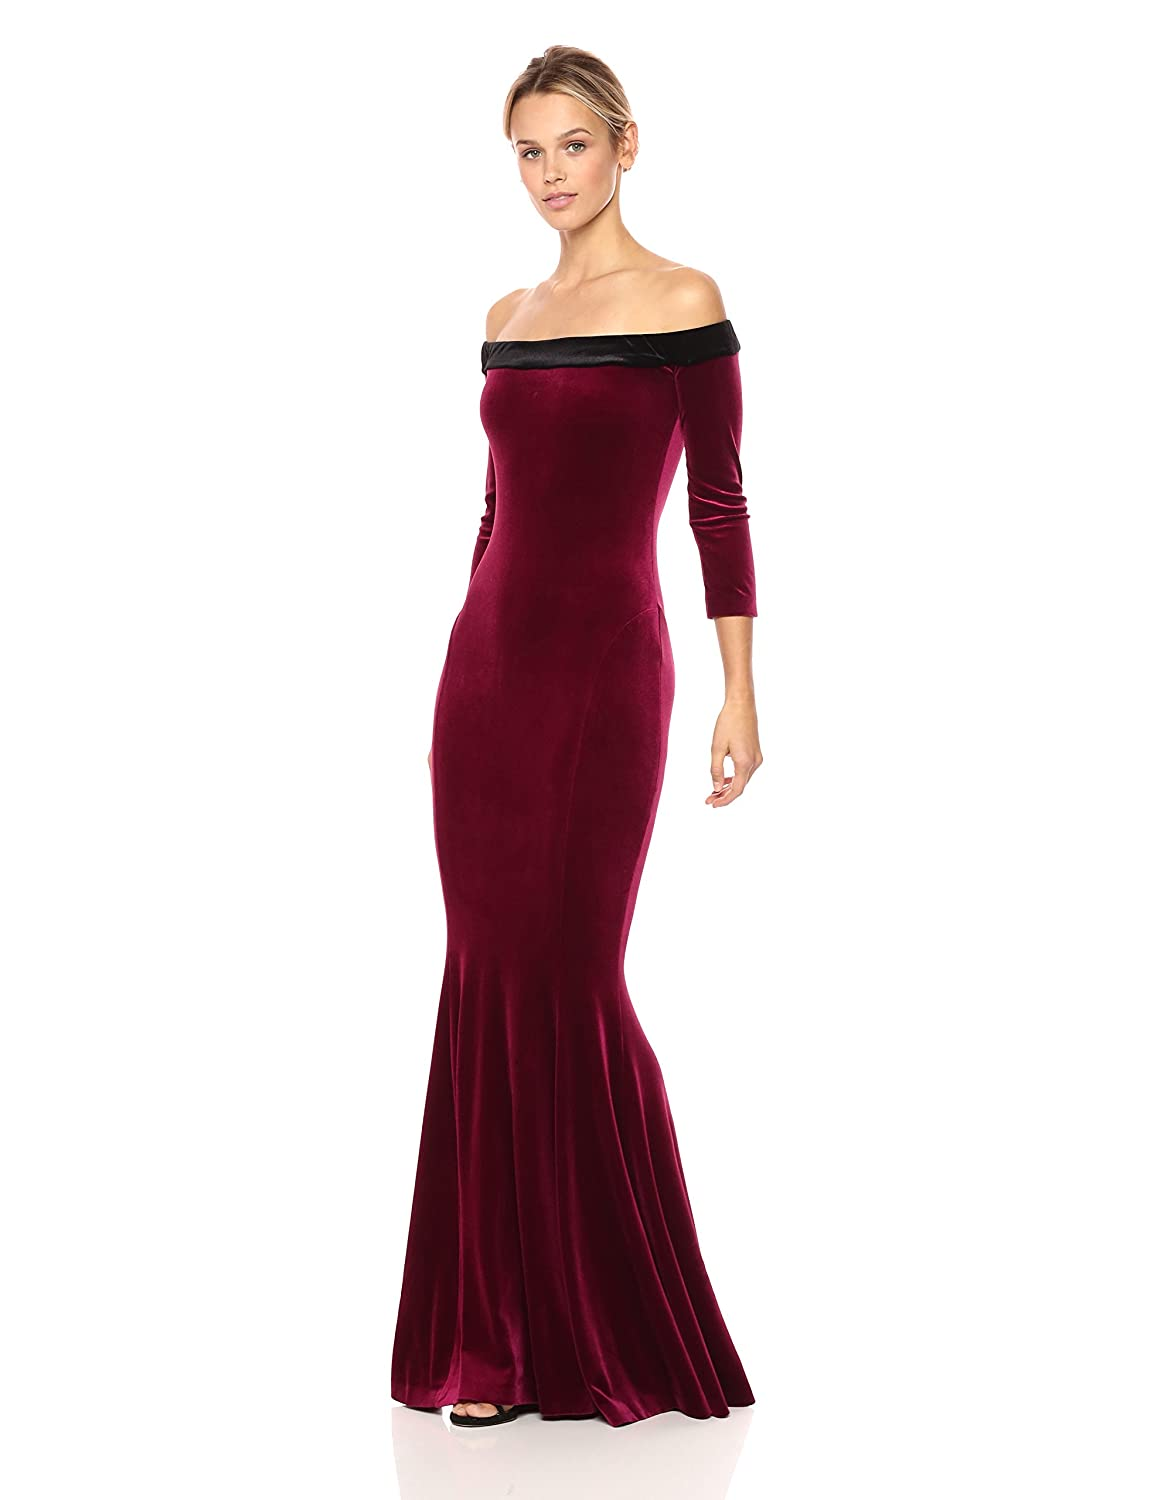 9b7c715bcc Norma Kamali Women s Off Shoulder Fishtail Gown at Amazon Women s Clothing  store